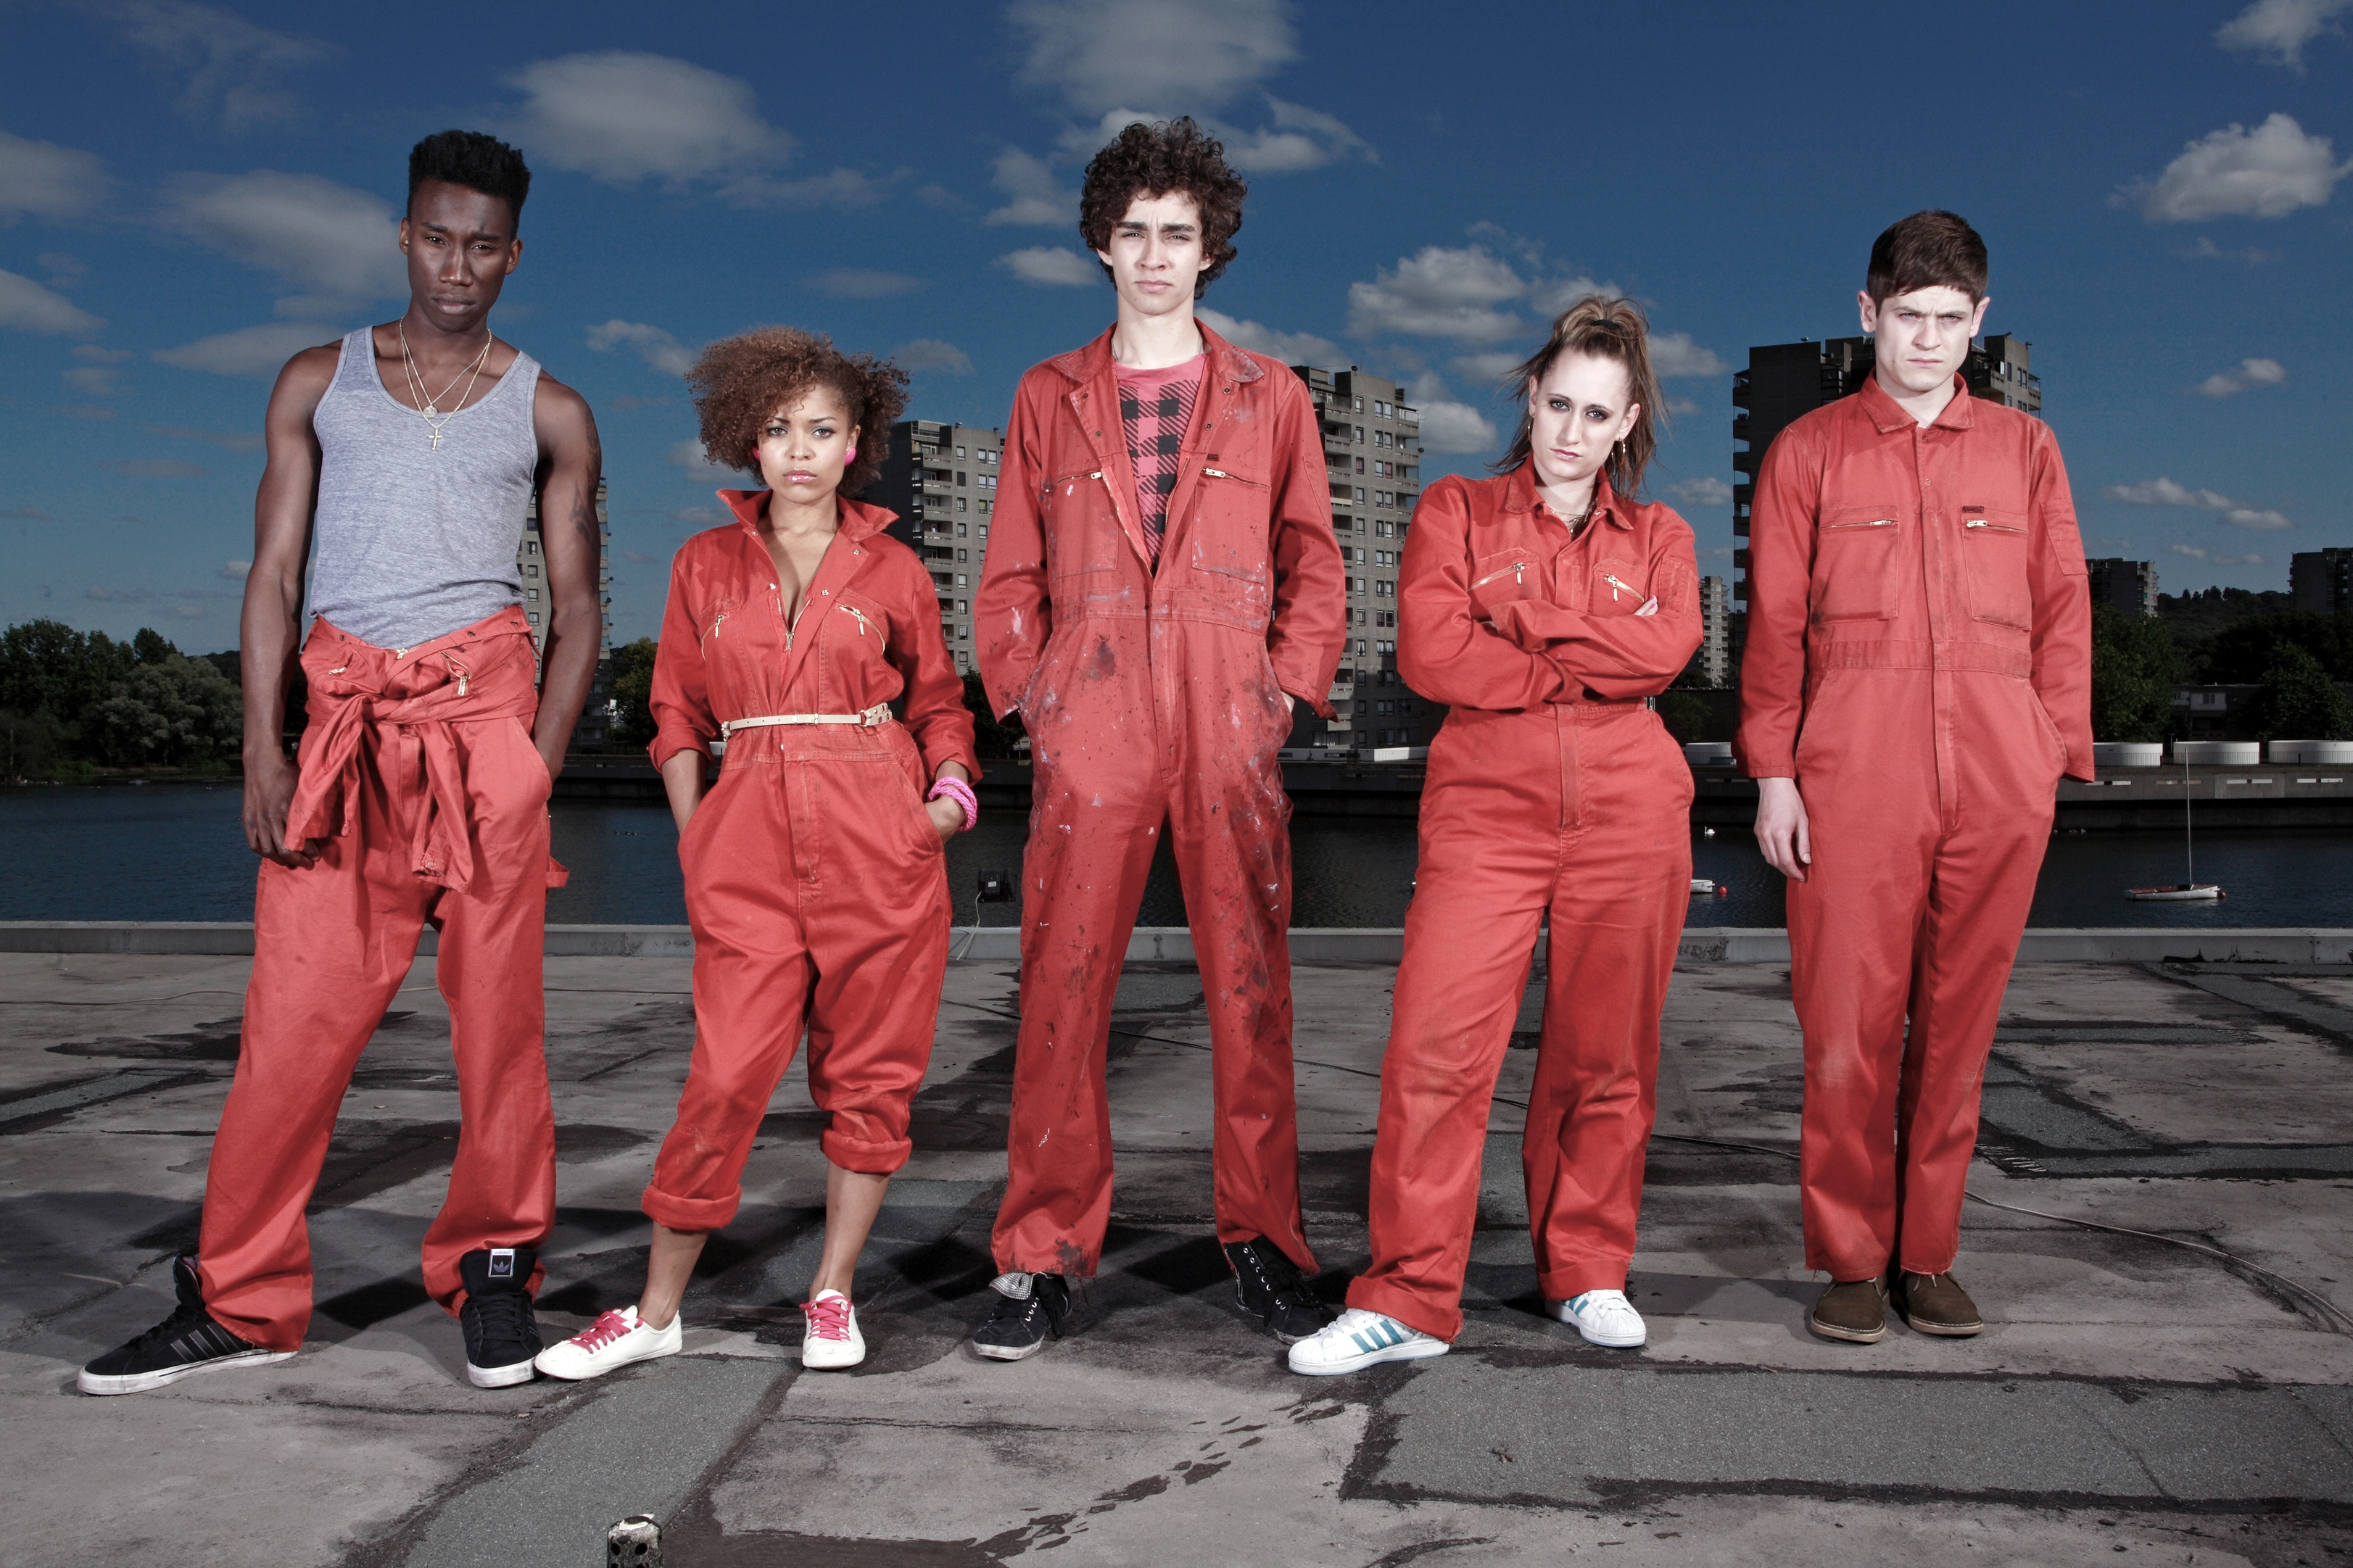 misfits freeform developing reboot of uk series canceled tv shows tv series finale. Black Bedroom Furniture Sets. Home Design Ideas